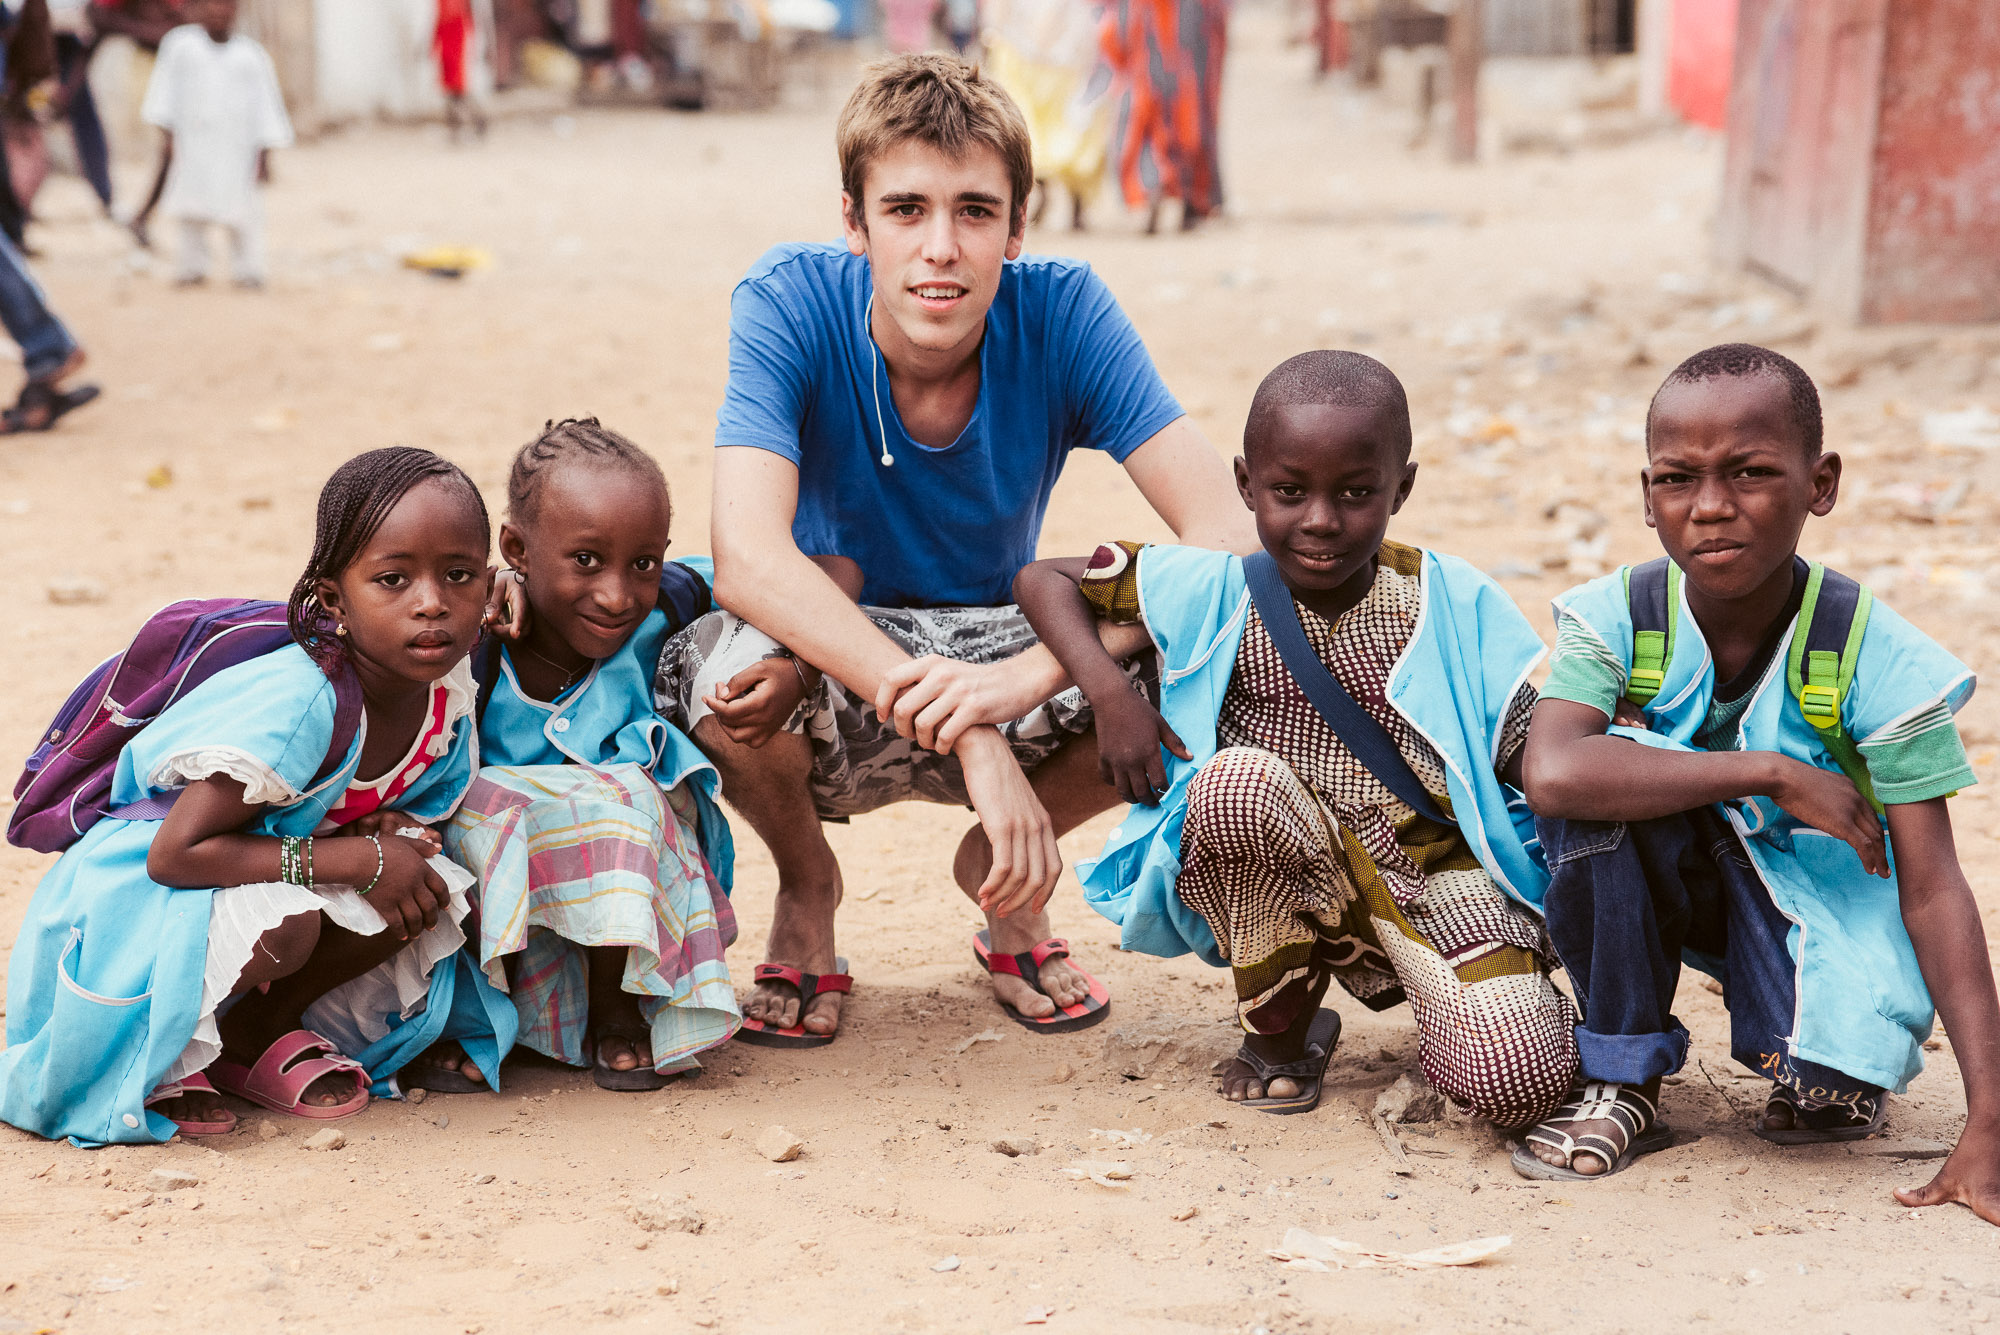 Gap Year Program - Love Volunteers - Make a REAL difference abroad!  2